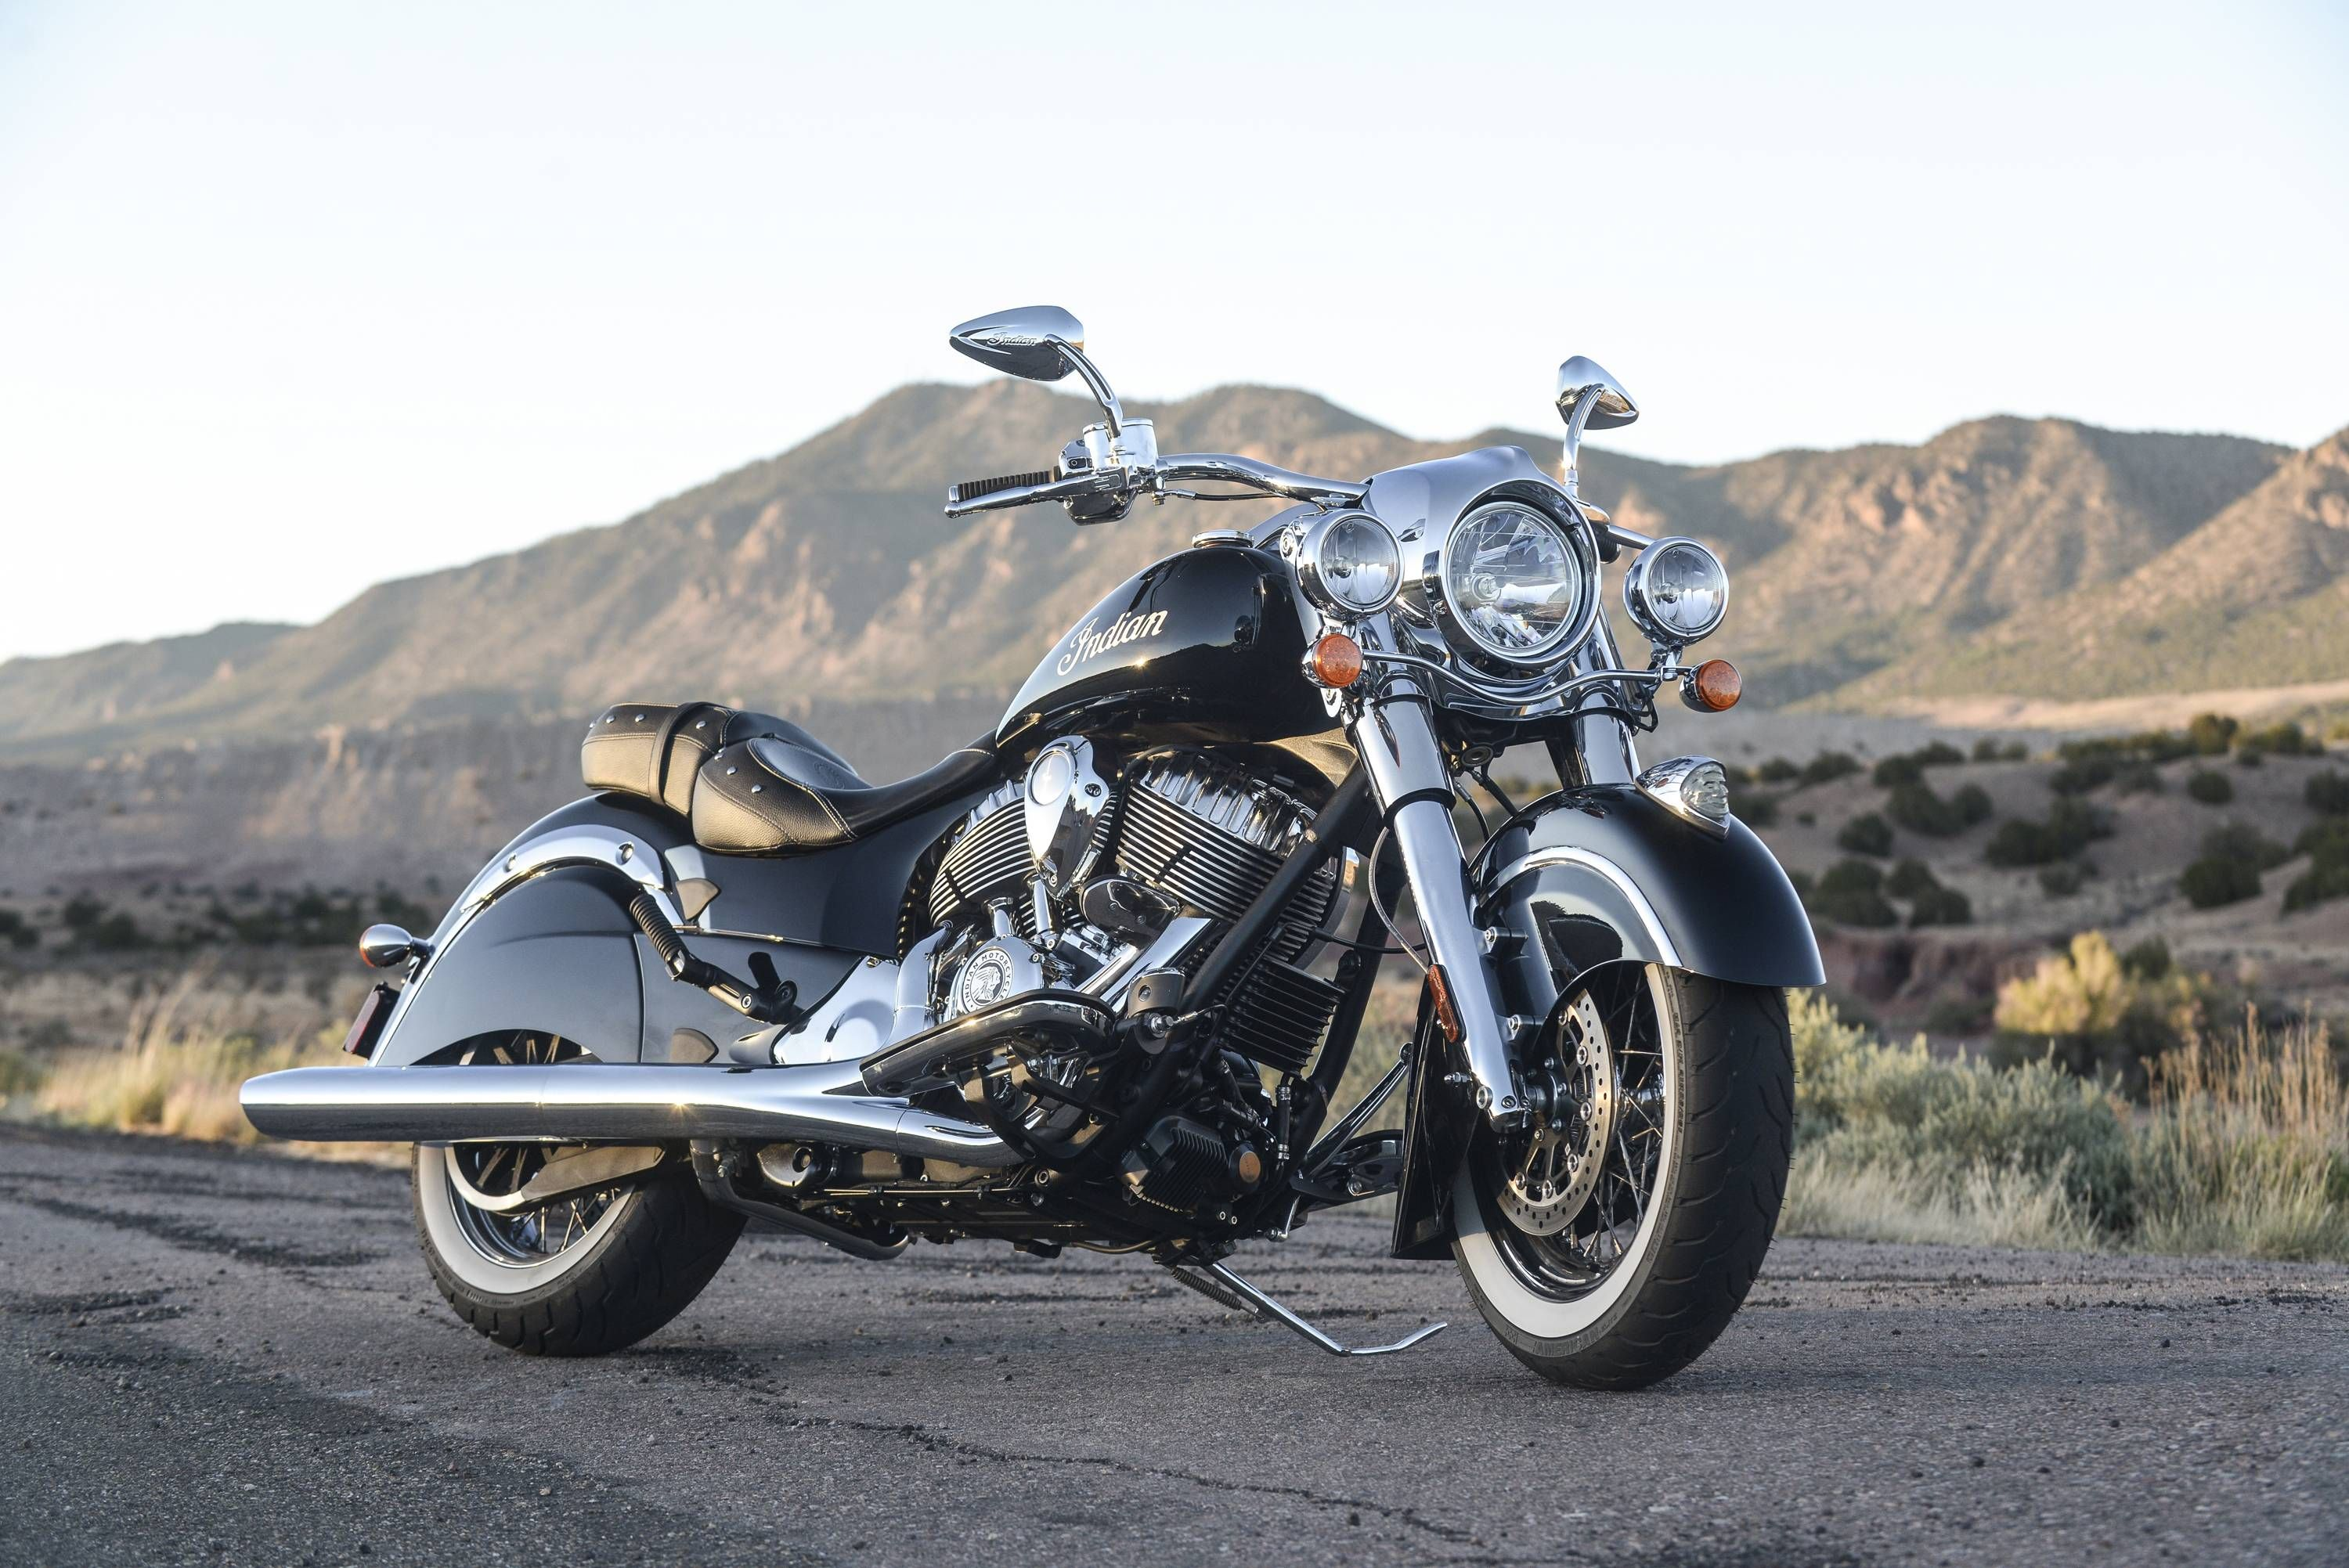 Indian Motorcycle Wallpapers Top Free Indian Motorcycle Backgrounds Wallpaperaccess Indian Motorcycle Motorcycle Wallpaper Indian Chief Classic